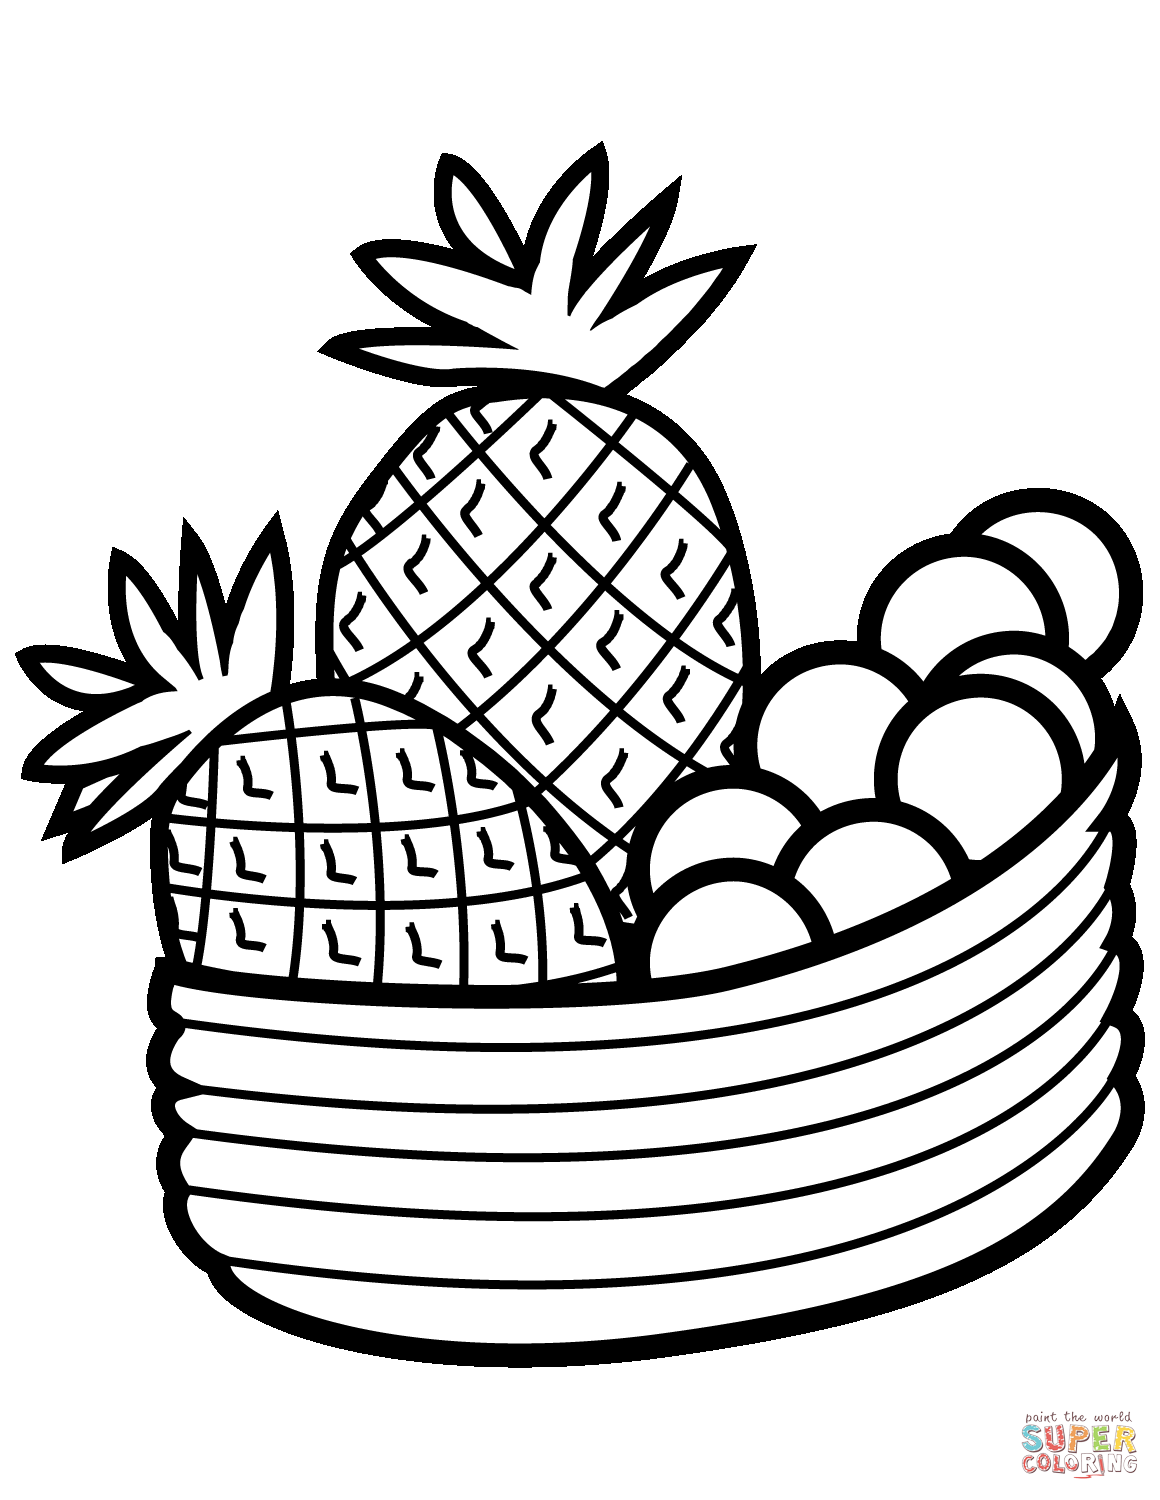 1160x1500 Fruit Bowl Coloring Page Free Printable Coloring Pages